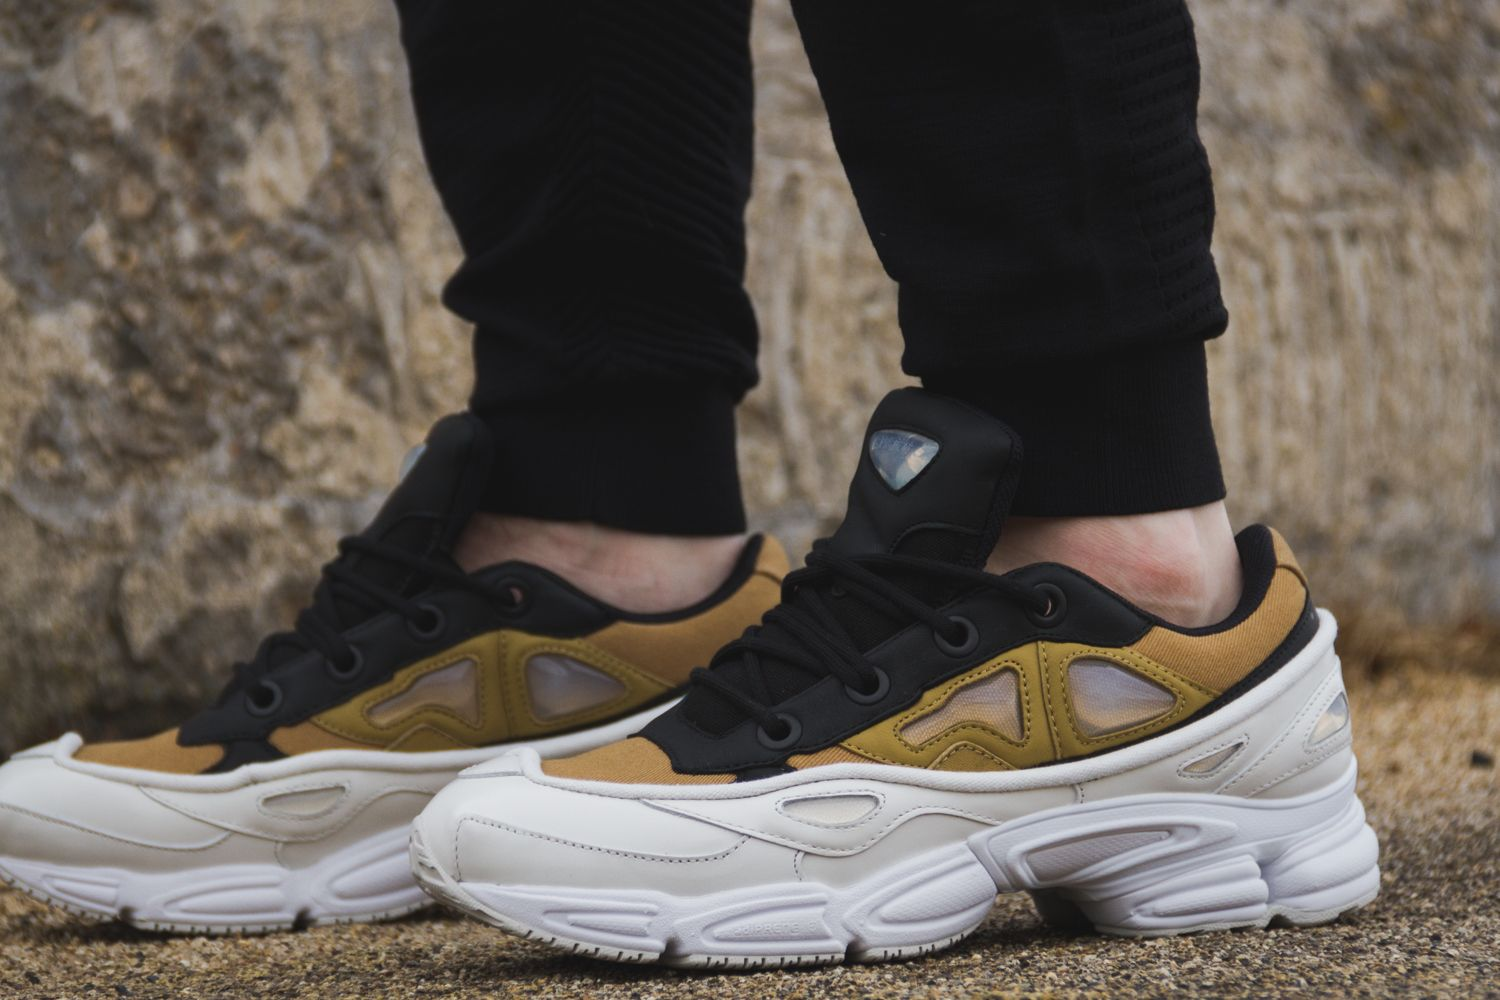 wholesale price closer at biggest discount adidas x Raf Simons Ozweego III Sneakers in White/Khaki ...